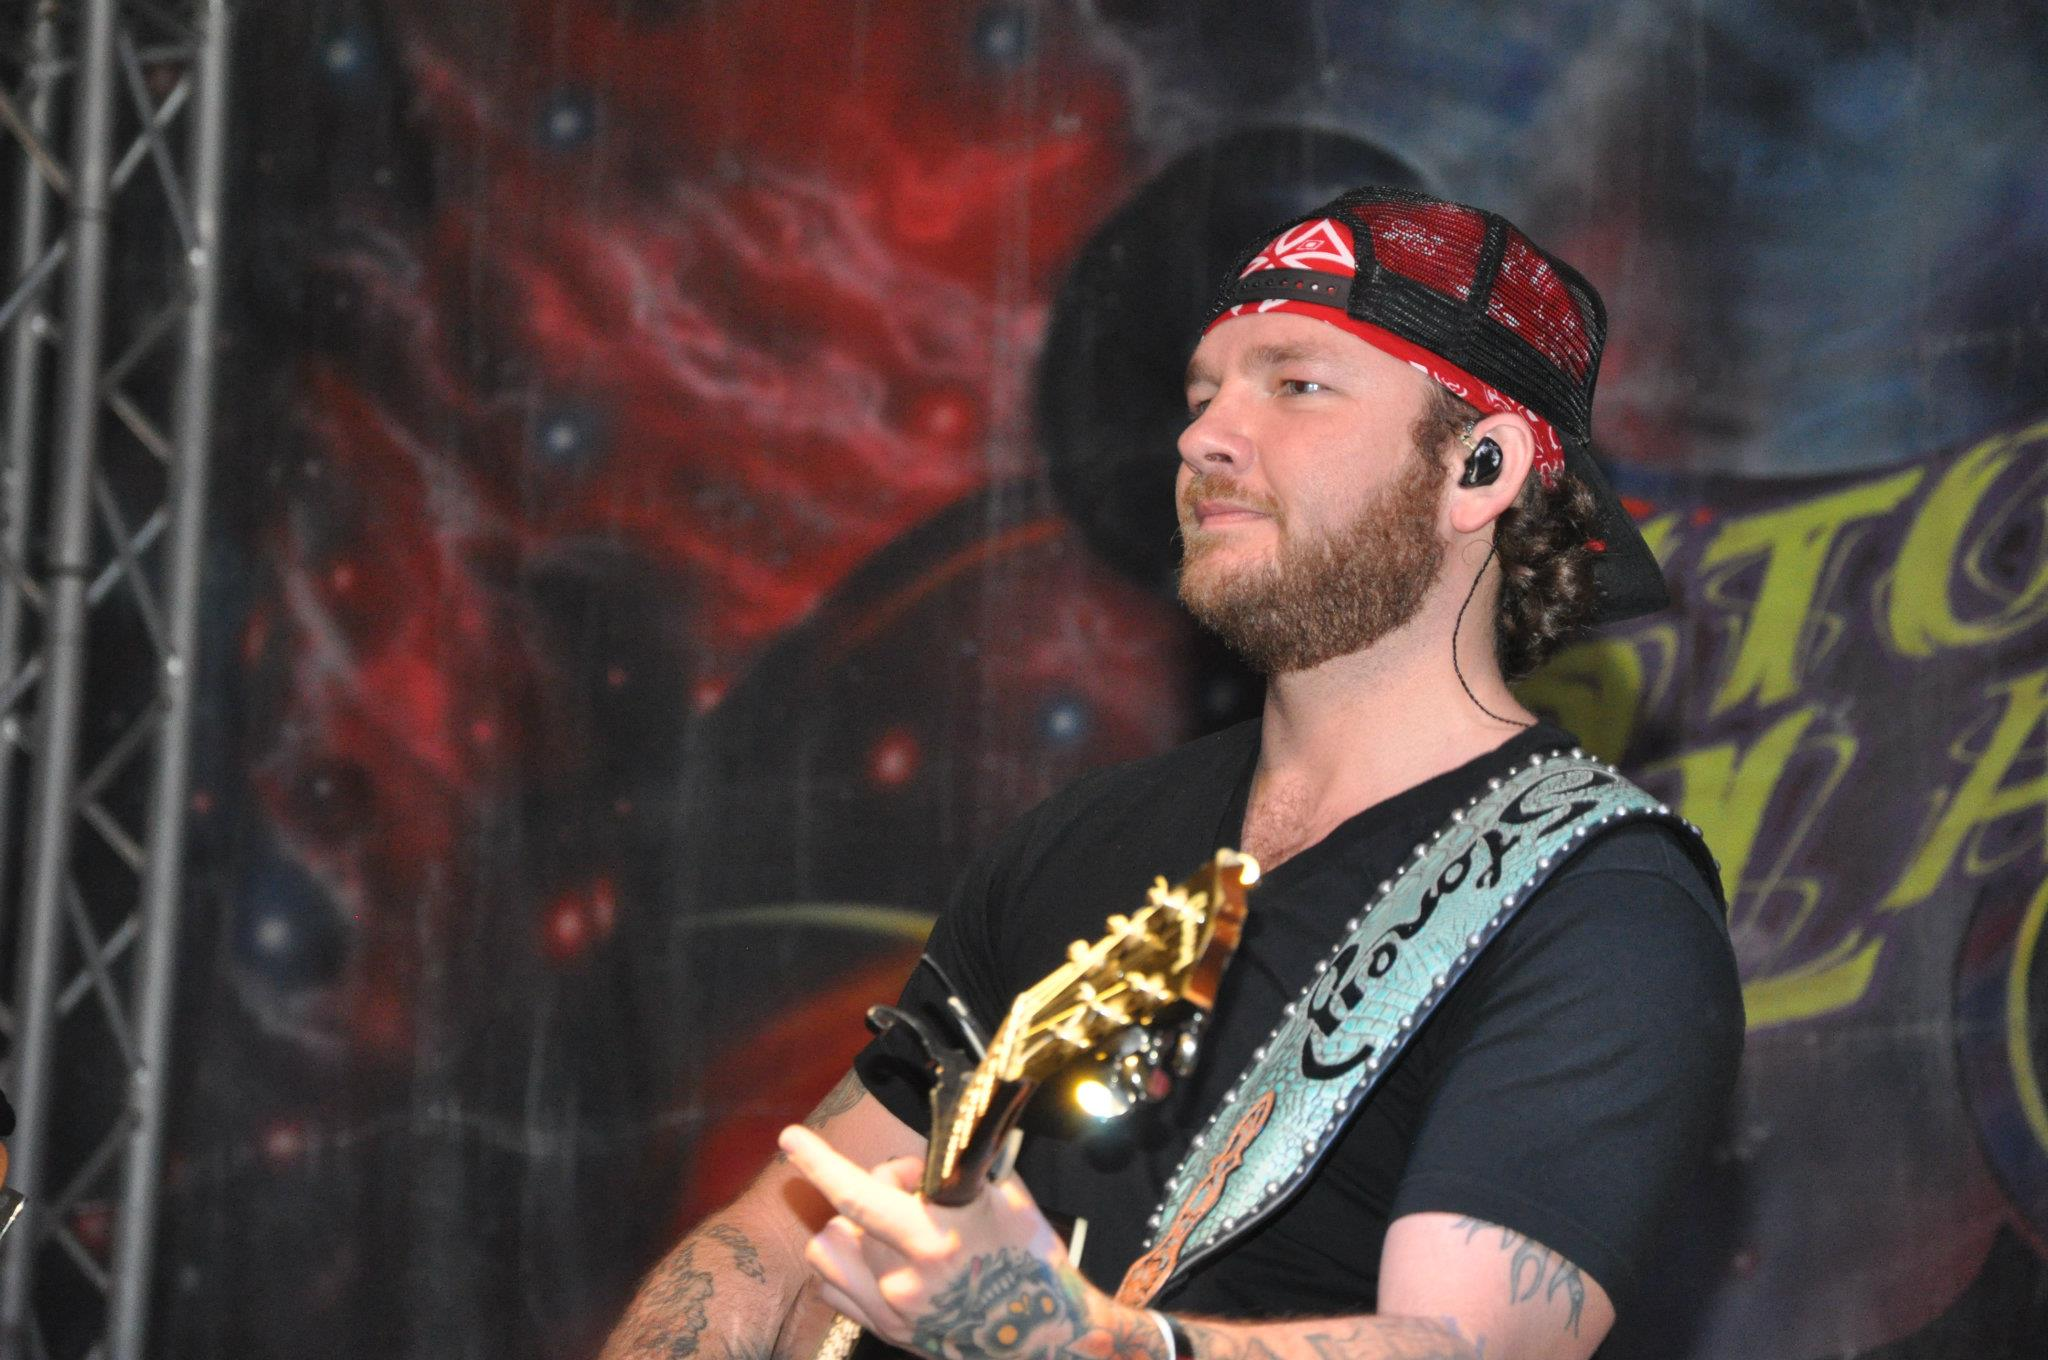 Over 1500 Attend Free Stoney Larue Concert Connors State